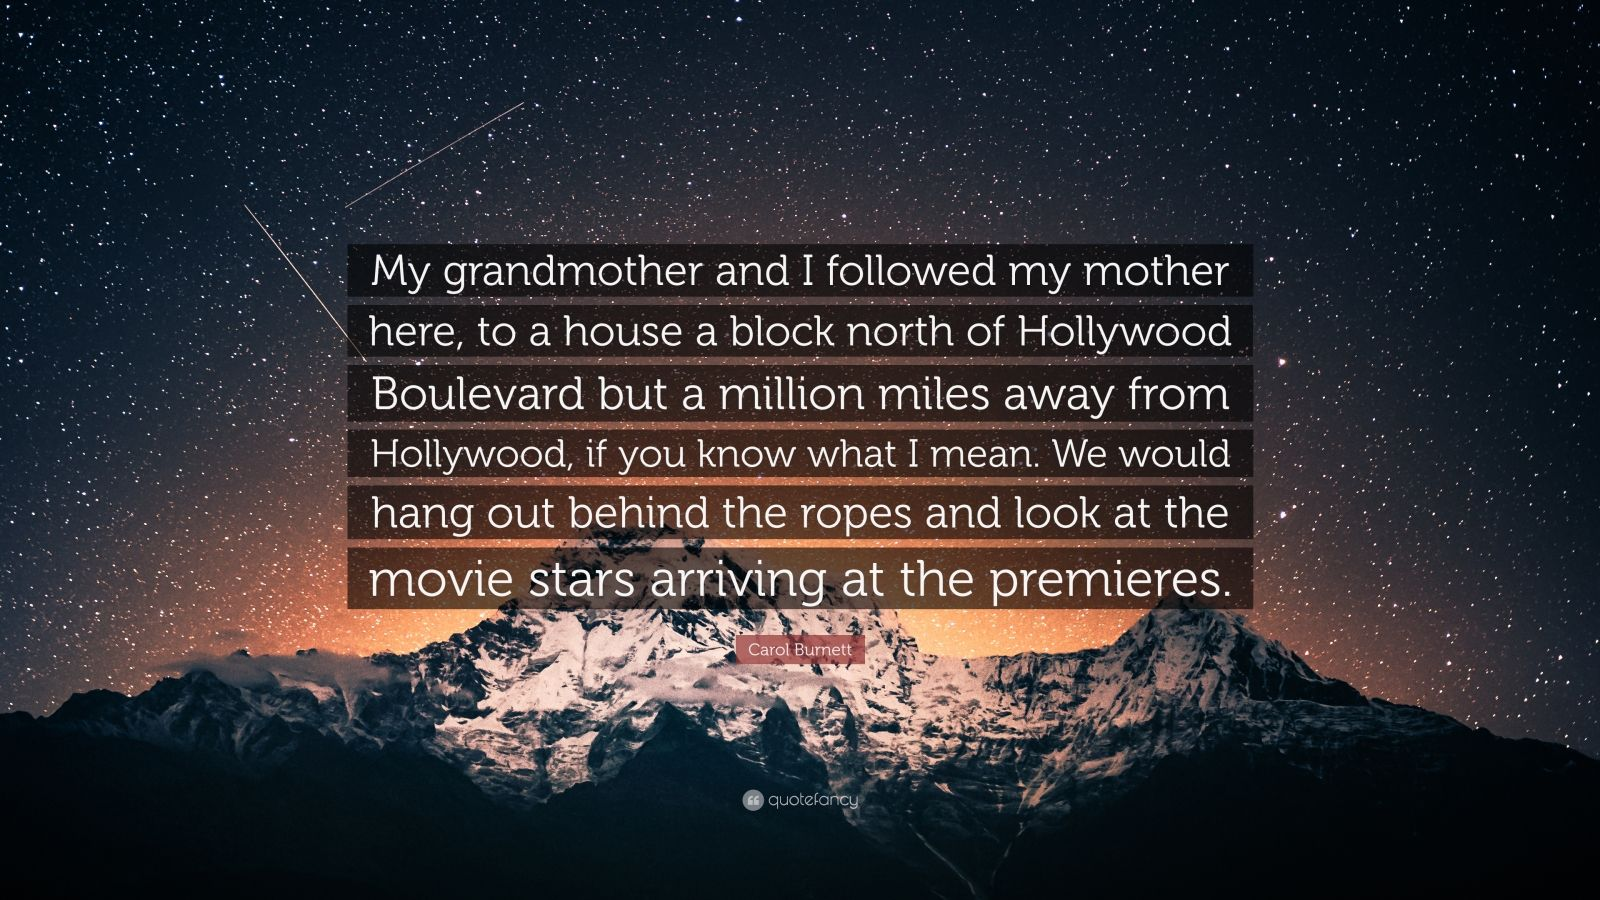 """Carol Burnett Quote: """"My grandmother and I followed my mother here, to a house a block north of Hollywood Boulevard but a million miles away from Hollywood, if you know what I mean. We would hang out behind the ropes and look at the movie stars arriving at the premieres."""""""